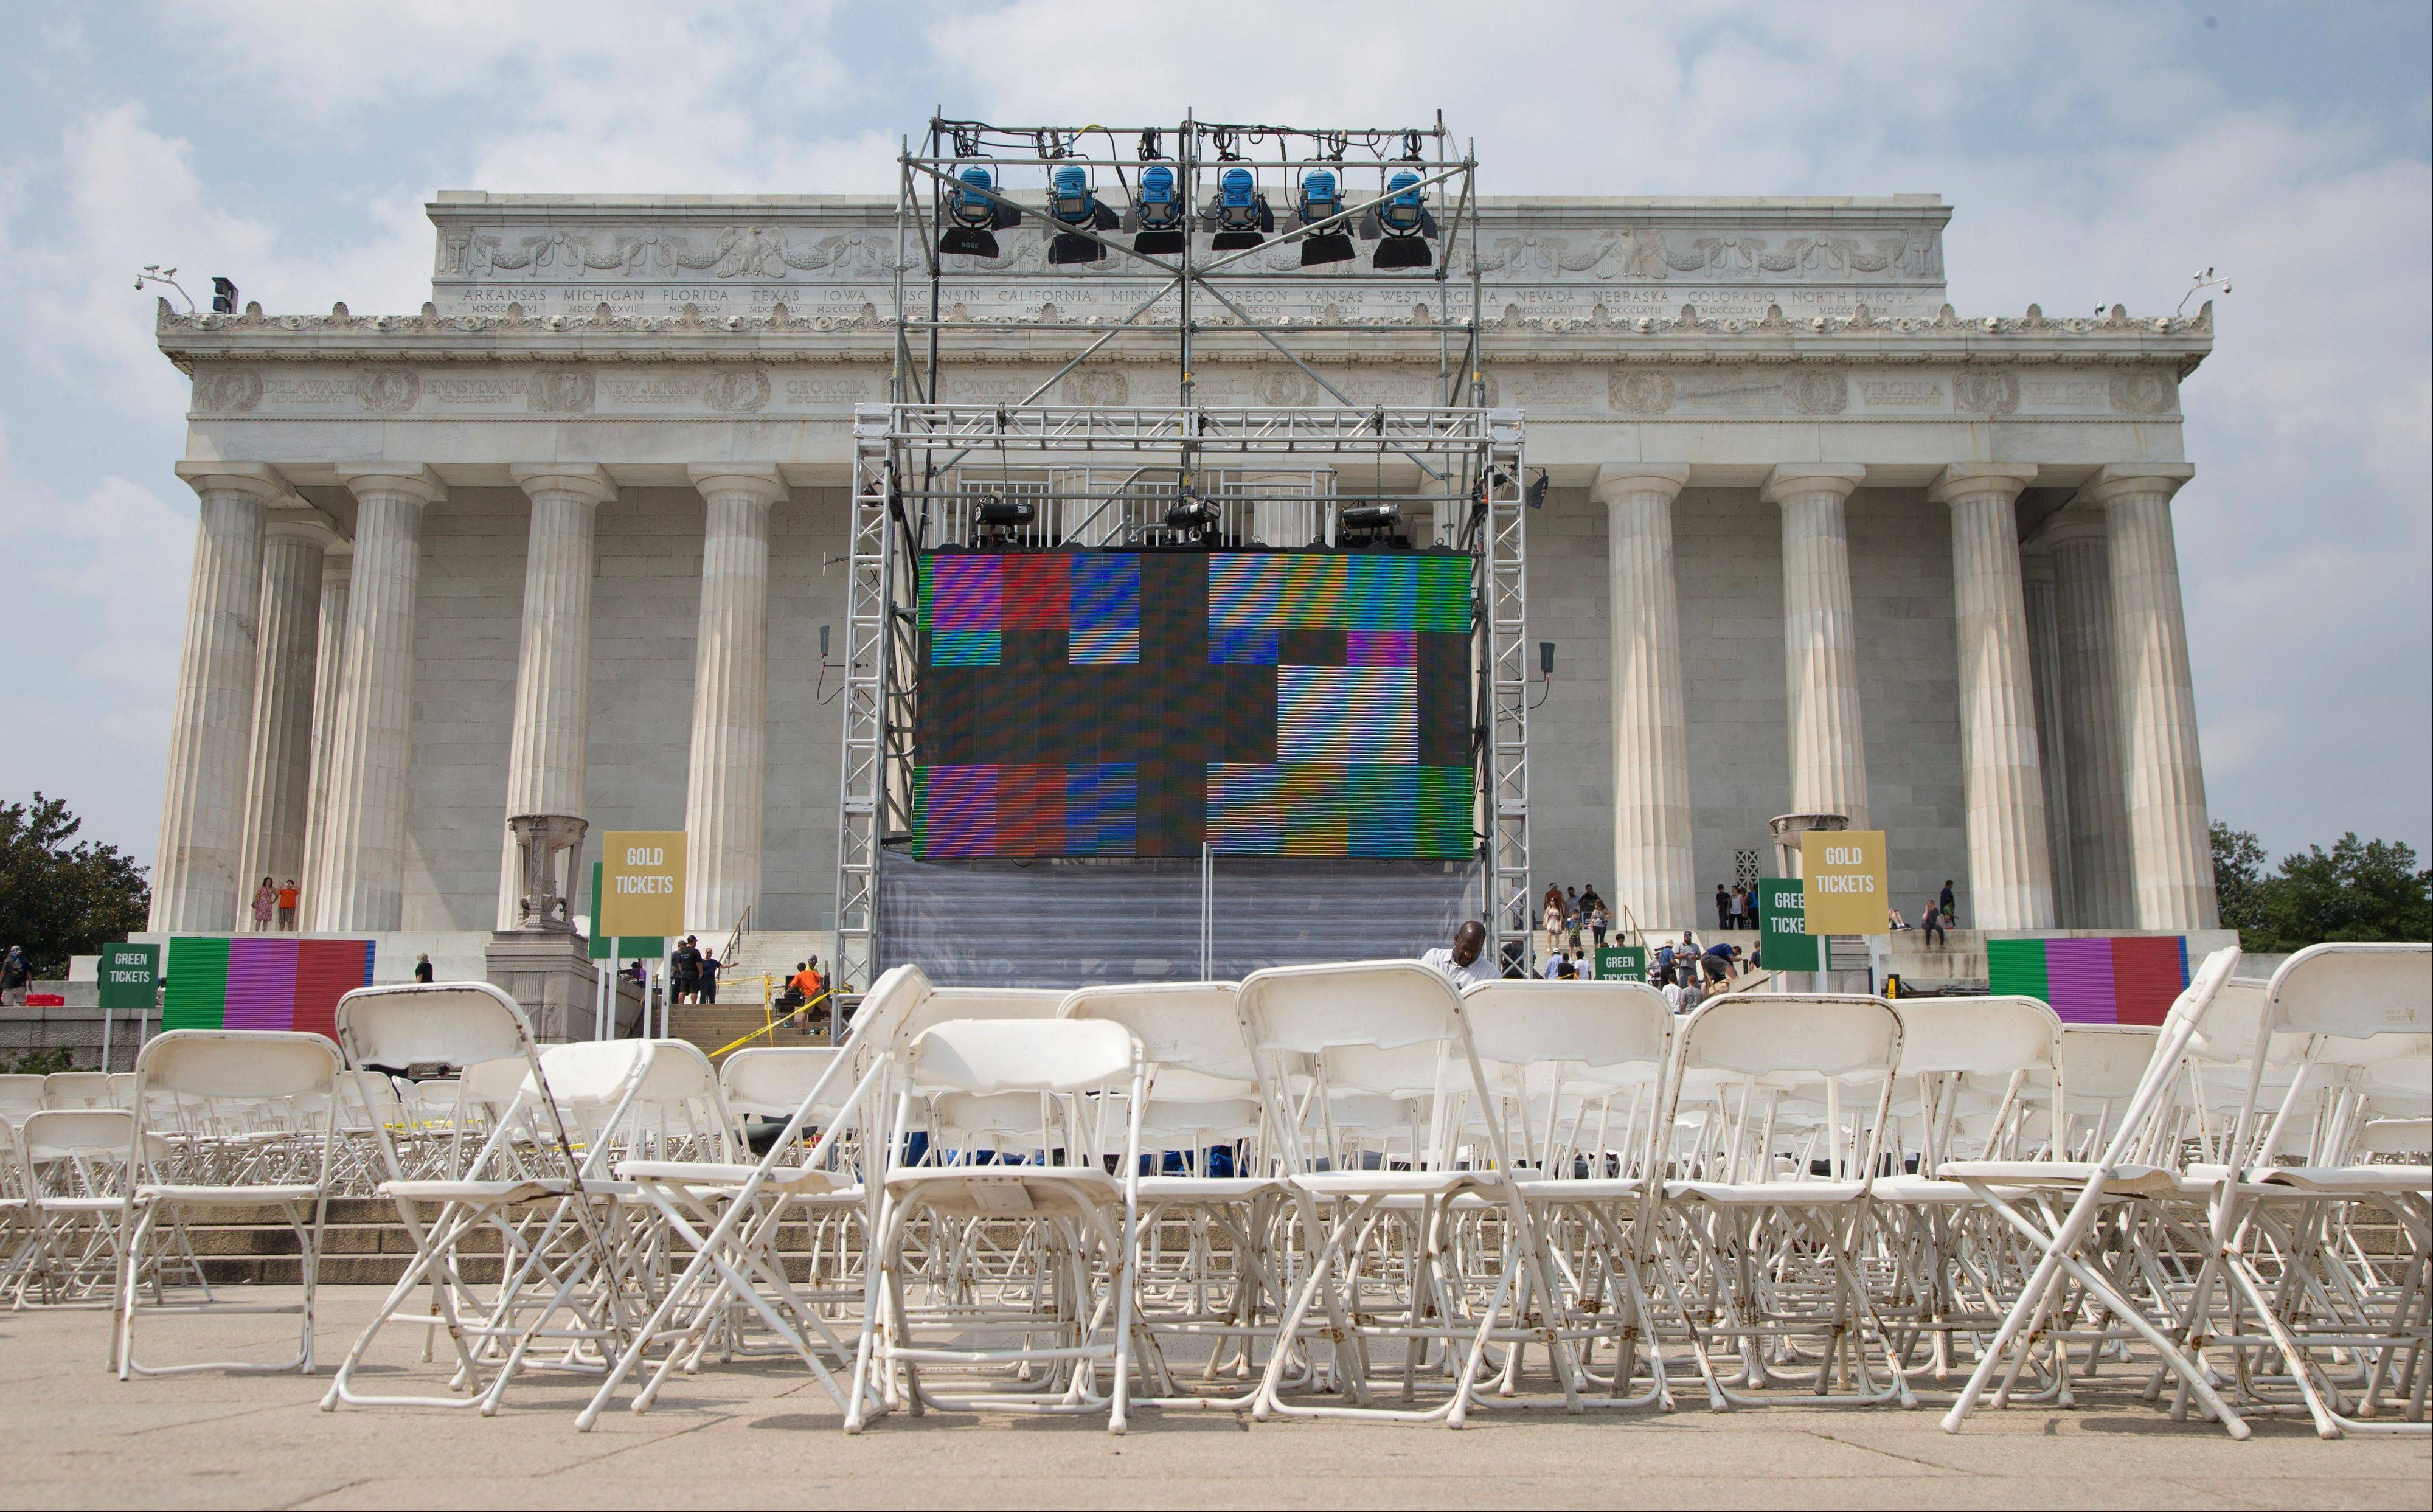 More than 300 sites to ring bells for MLK speech